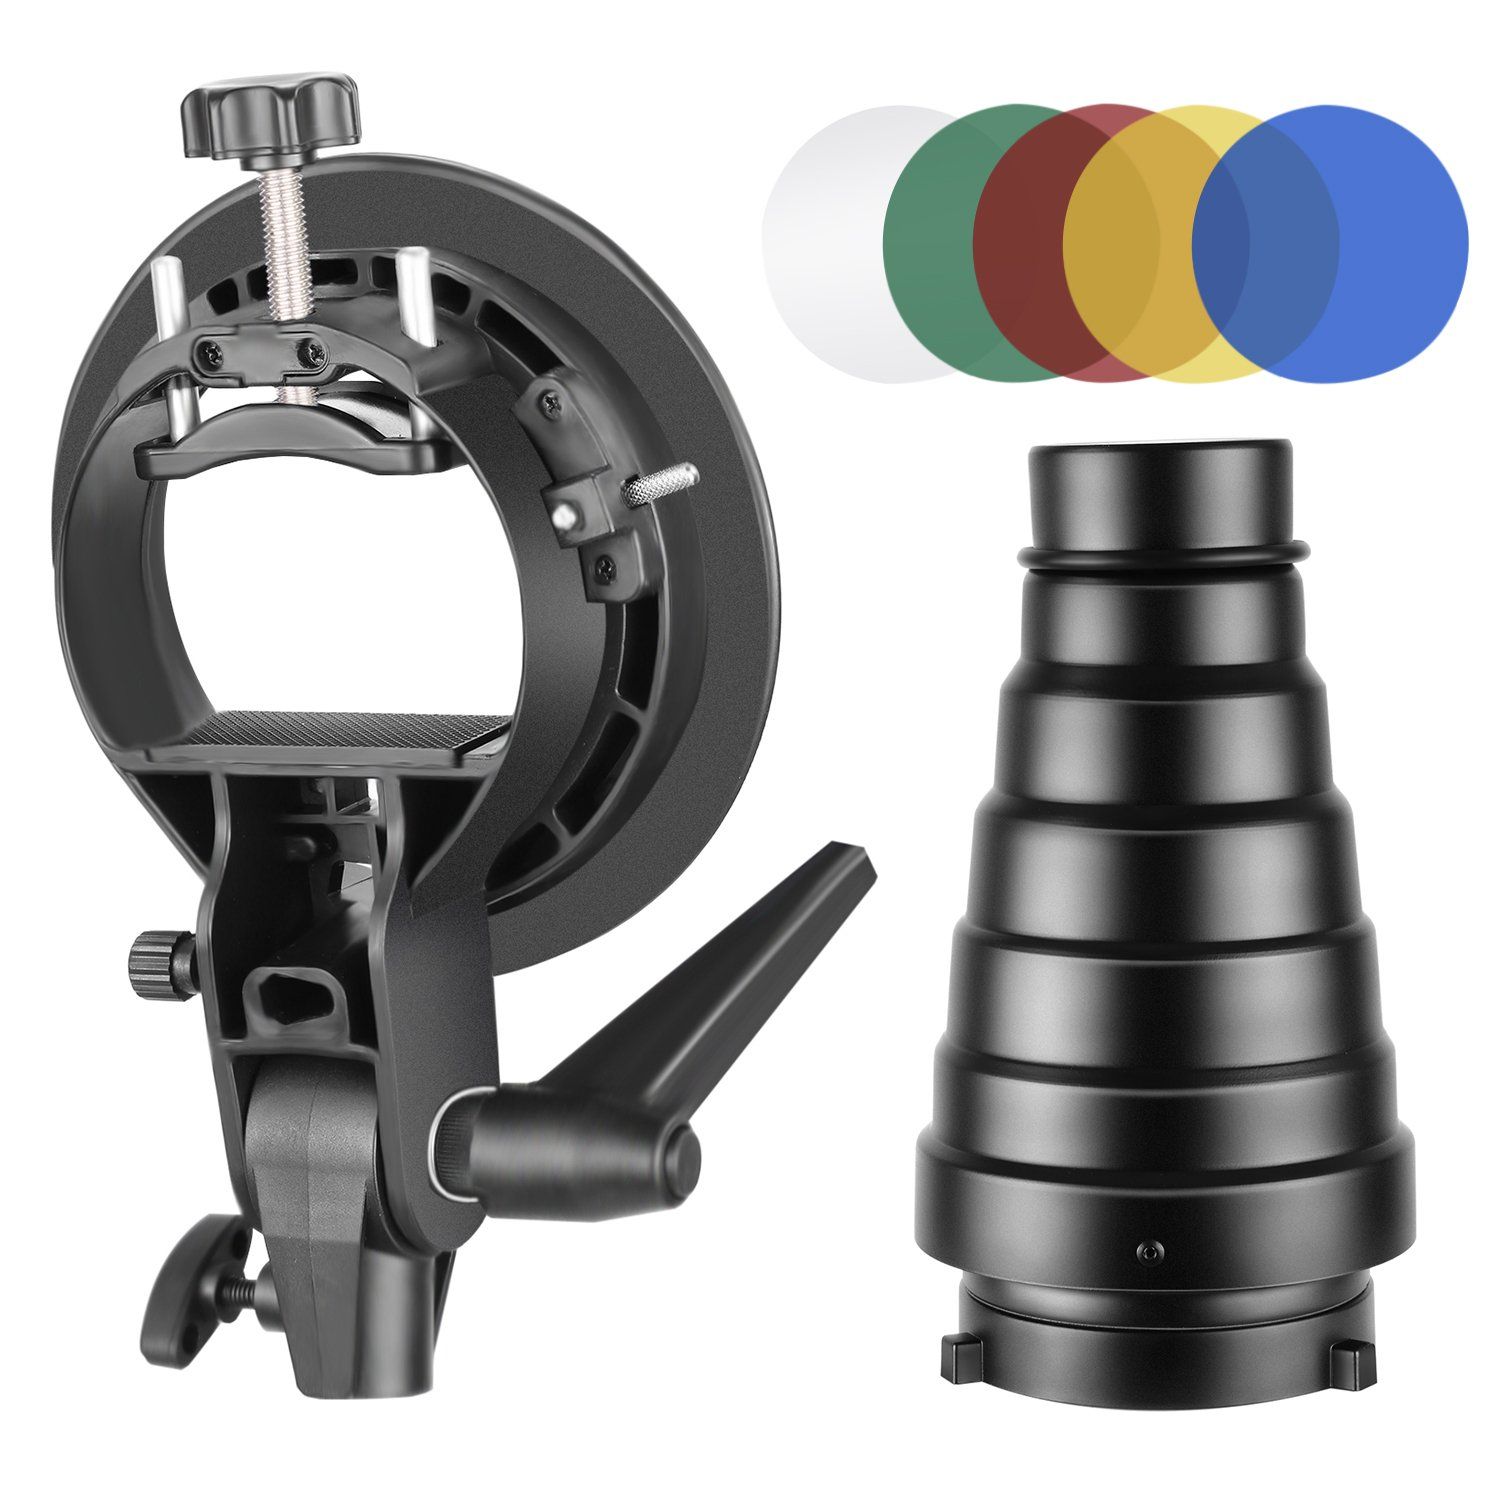 Neewer Photography S-Type Flash Bracket Holder and Conical Snoot Kit with Bowens Mount, Honeycomb Grid, 5 Pieces Color Gel Filters for Speedlite Flash Softbox Beauty Dish Reflector Umbrella